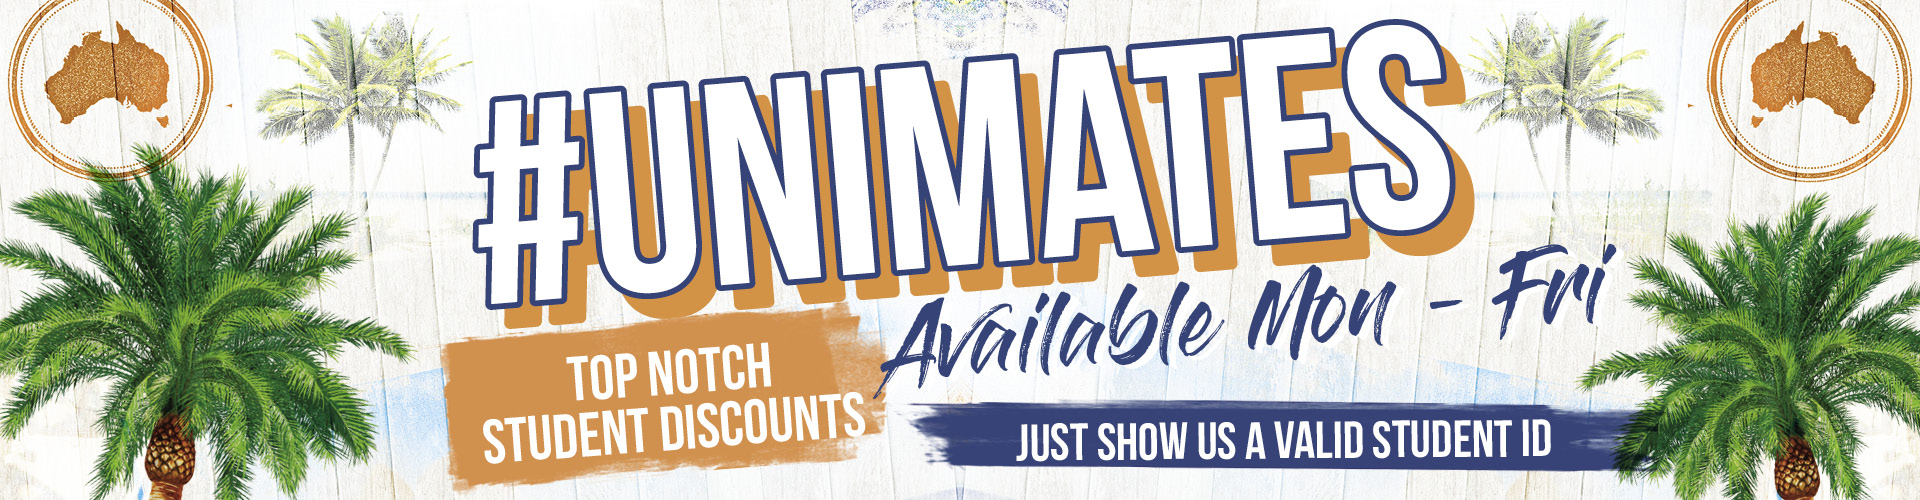 Unimates - Student Discounts at Walkabout